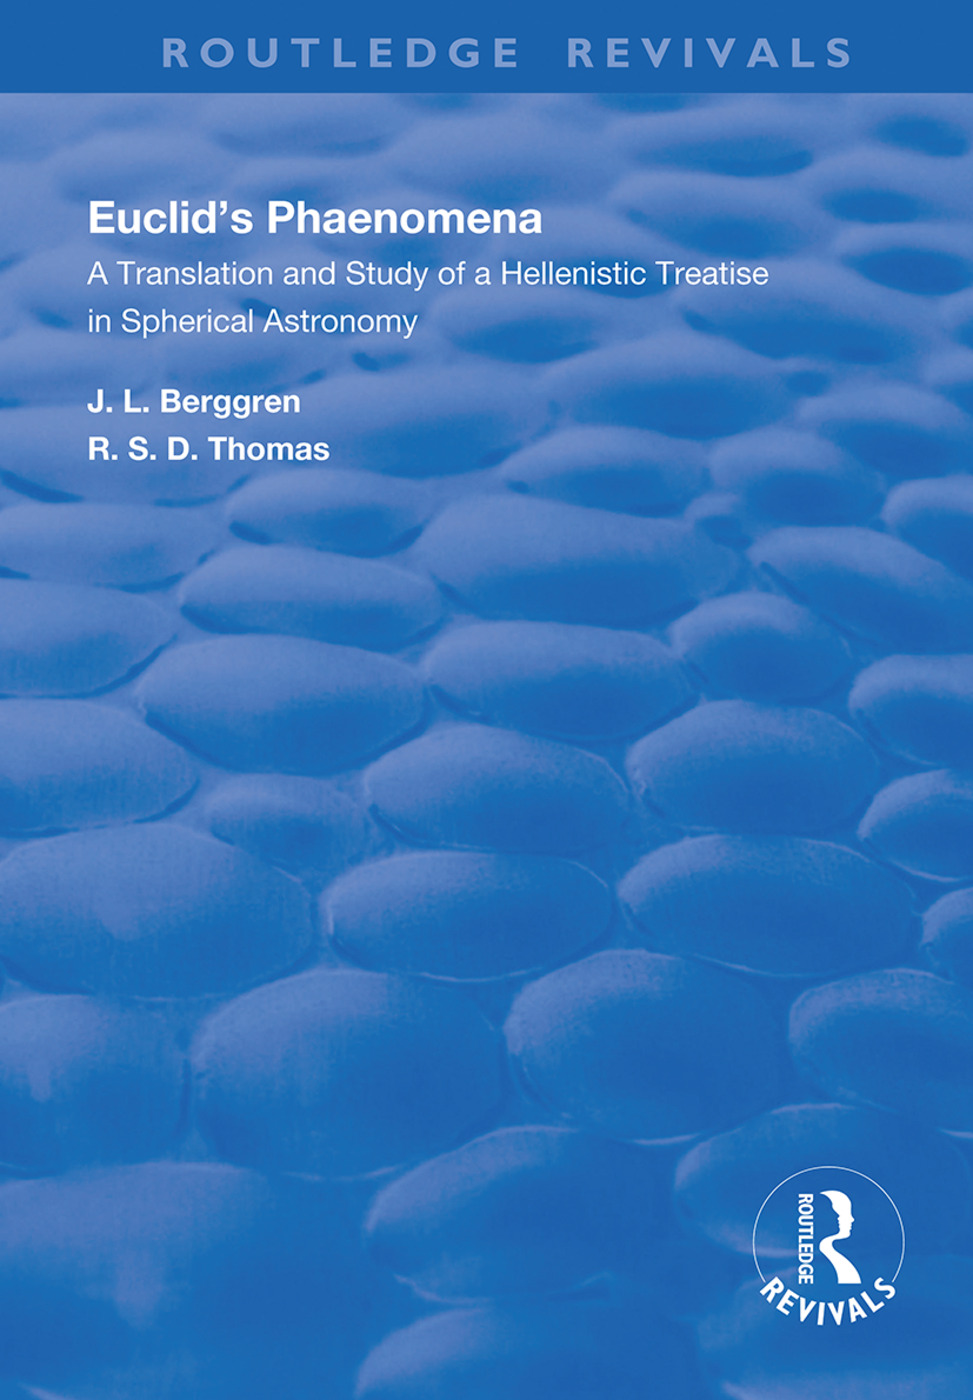 Euclid's Phaenomena: A Translation and Study of a Hellenistic Treatise in Spherical Astronomy book cover